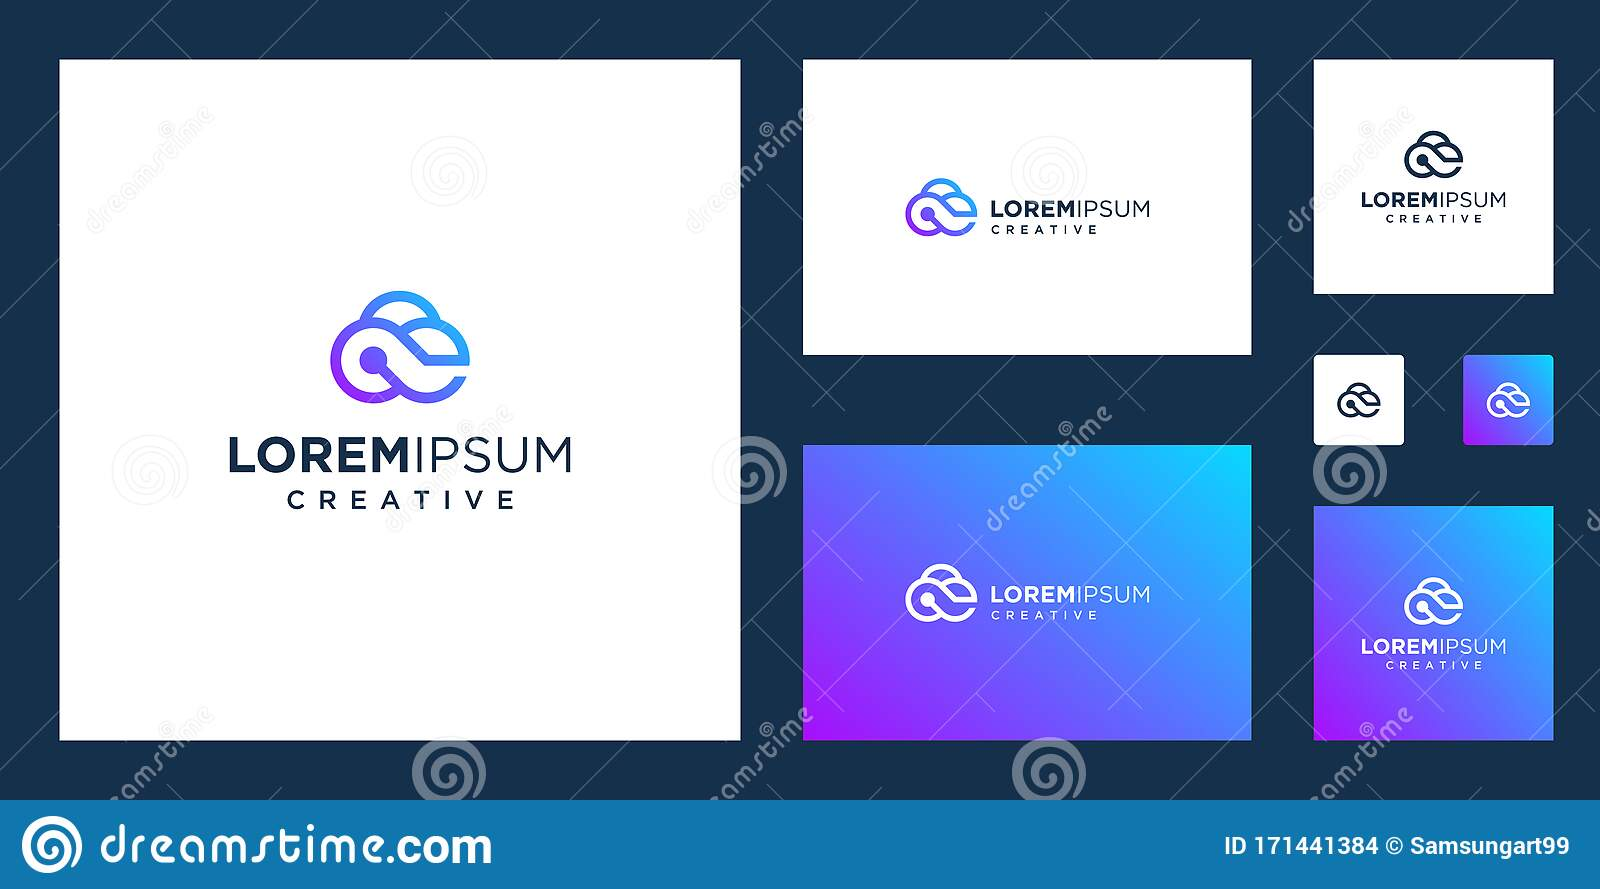 Cloud Tech With Infinity Concept Logo Design Technology Stock Vector Illustration Of Graphic Logo 171441384